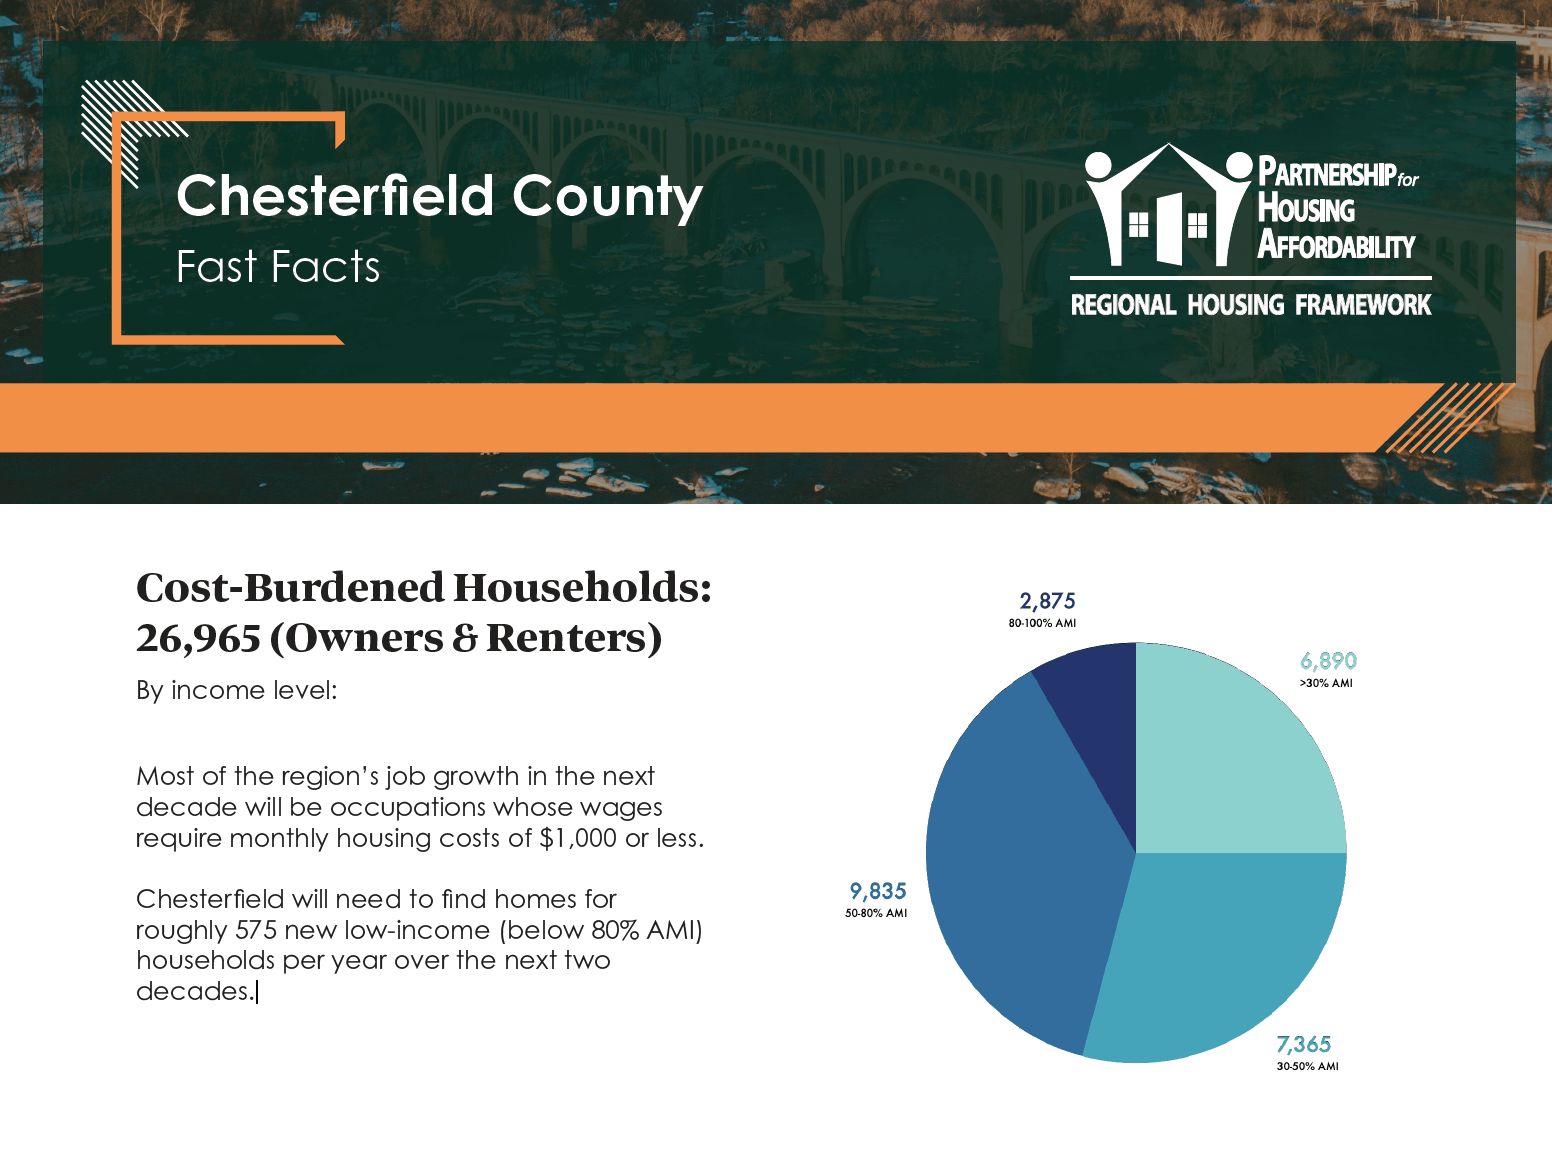 Fast Facts – Chesterfield